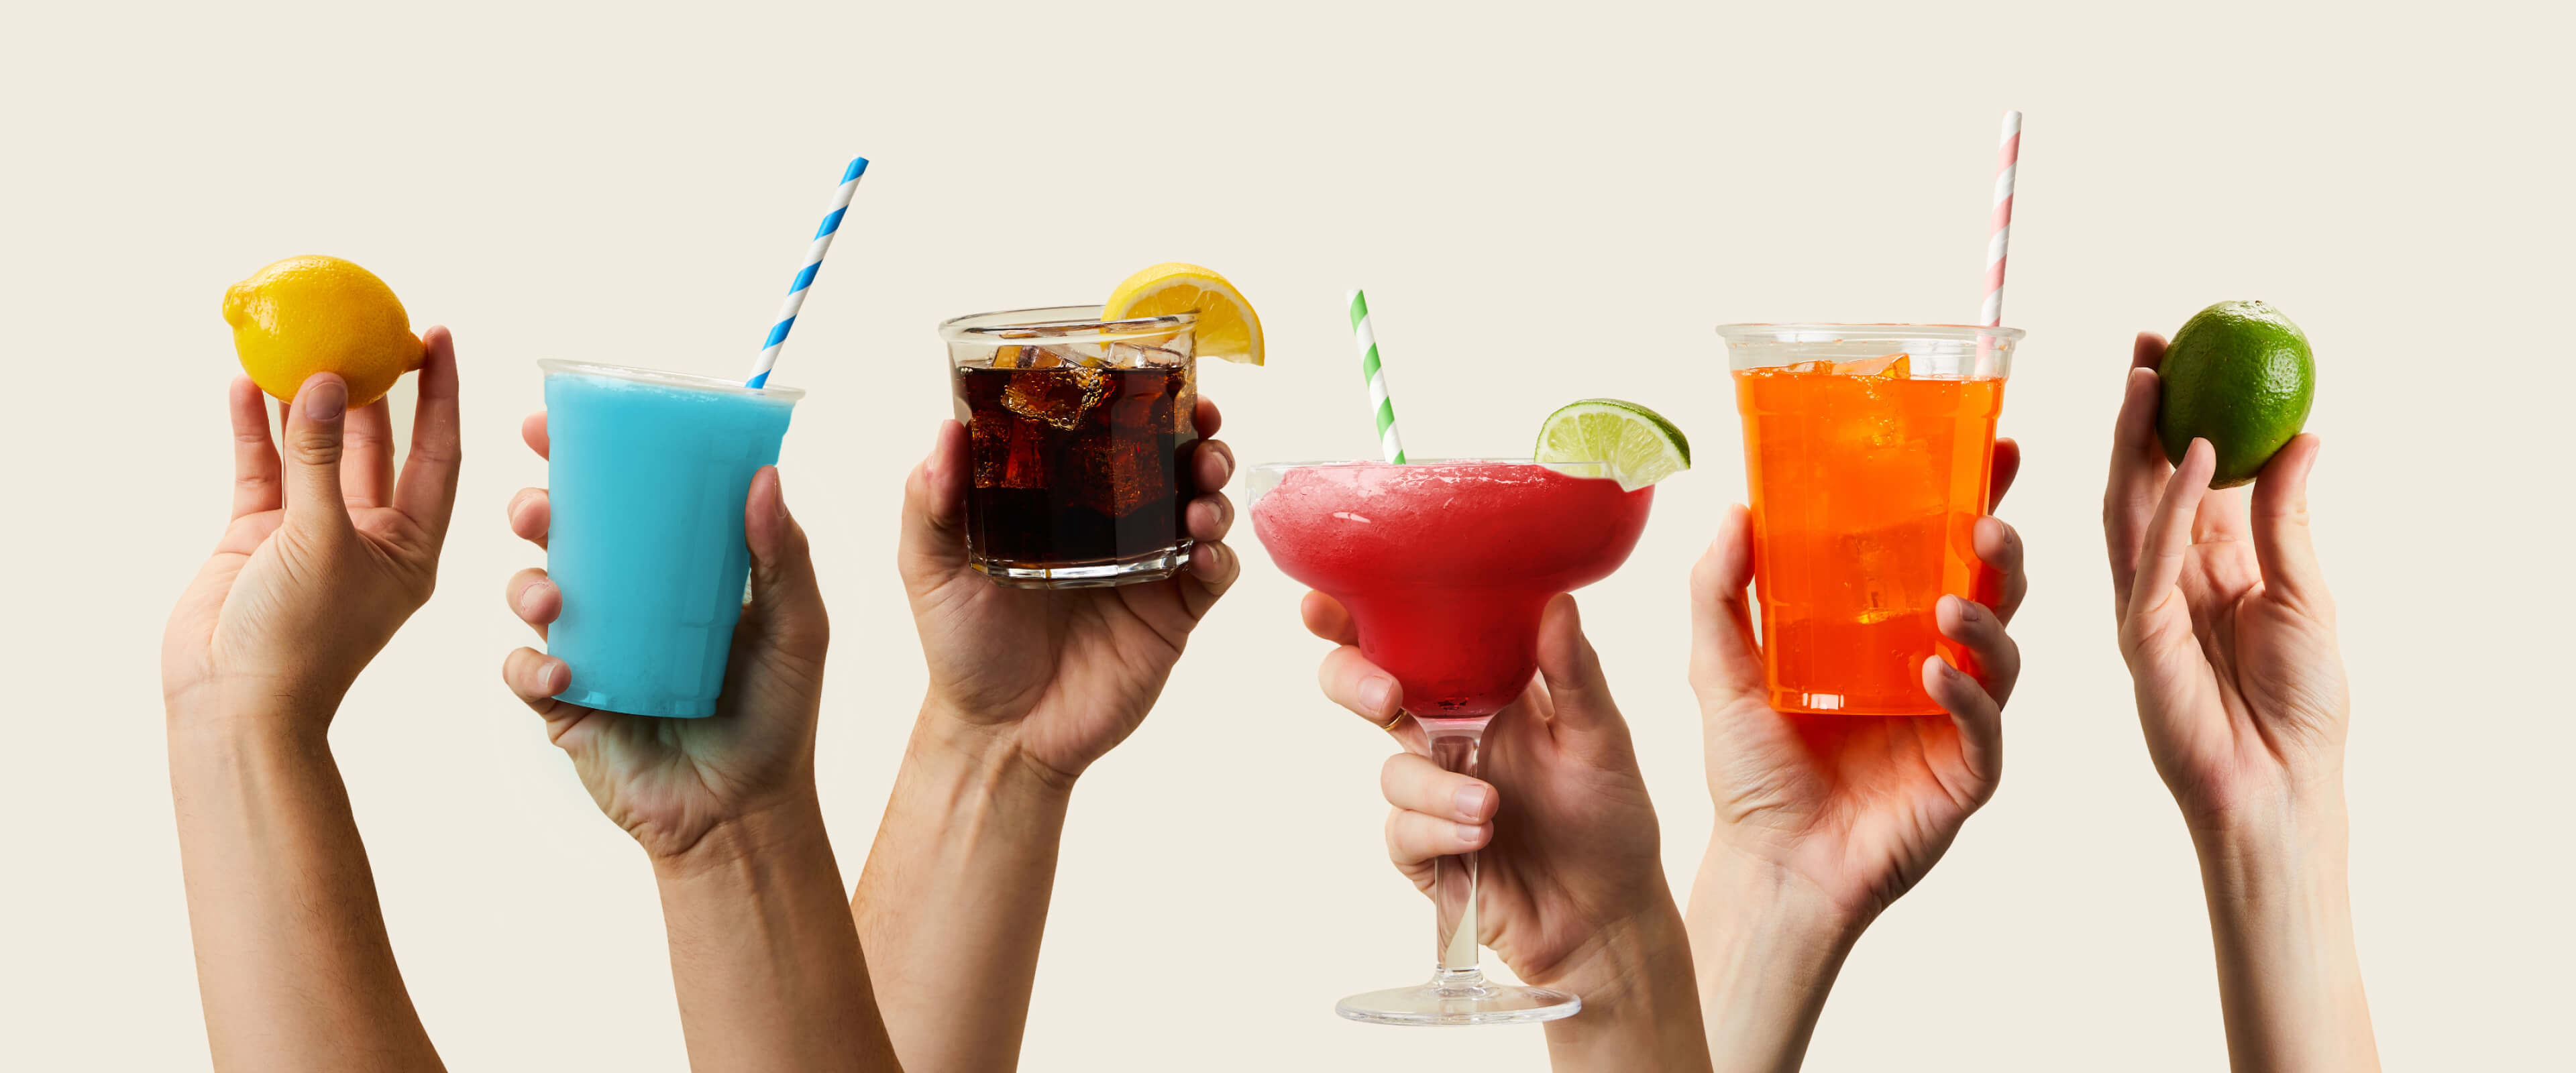 Lots of hands toasting with glasses of colorful drinks